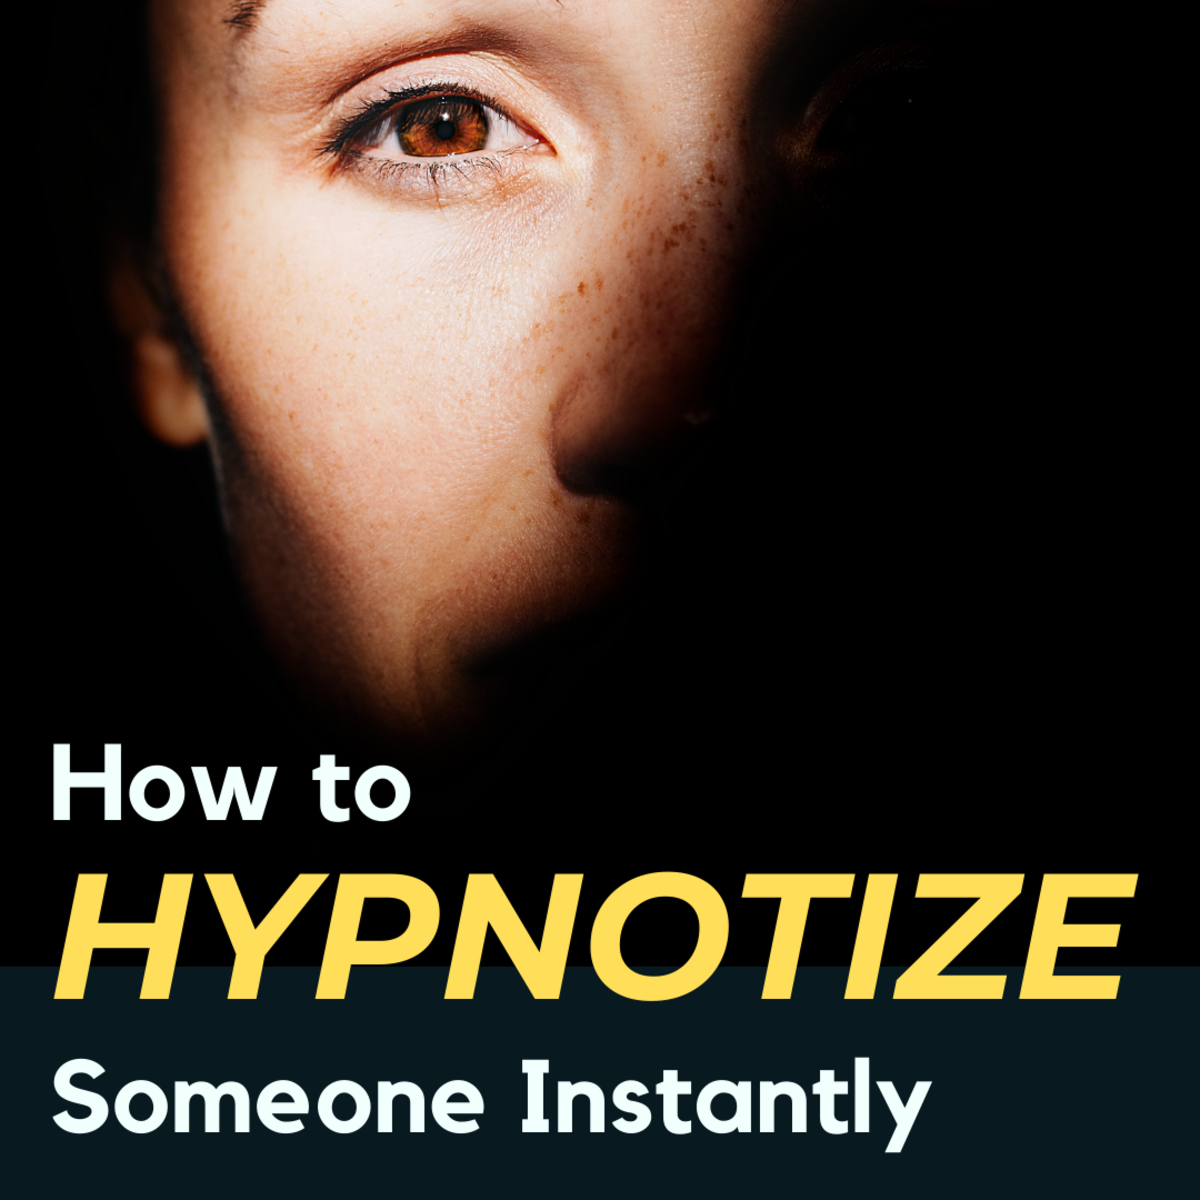 How to Hypnotize Someone Instantly